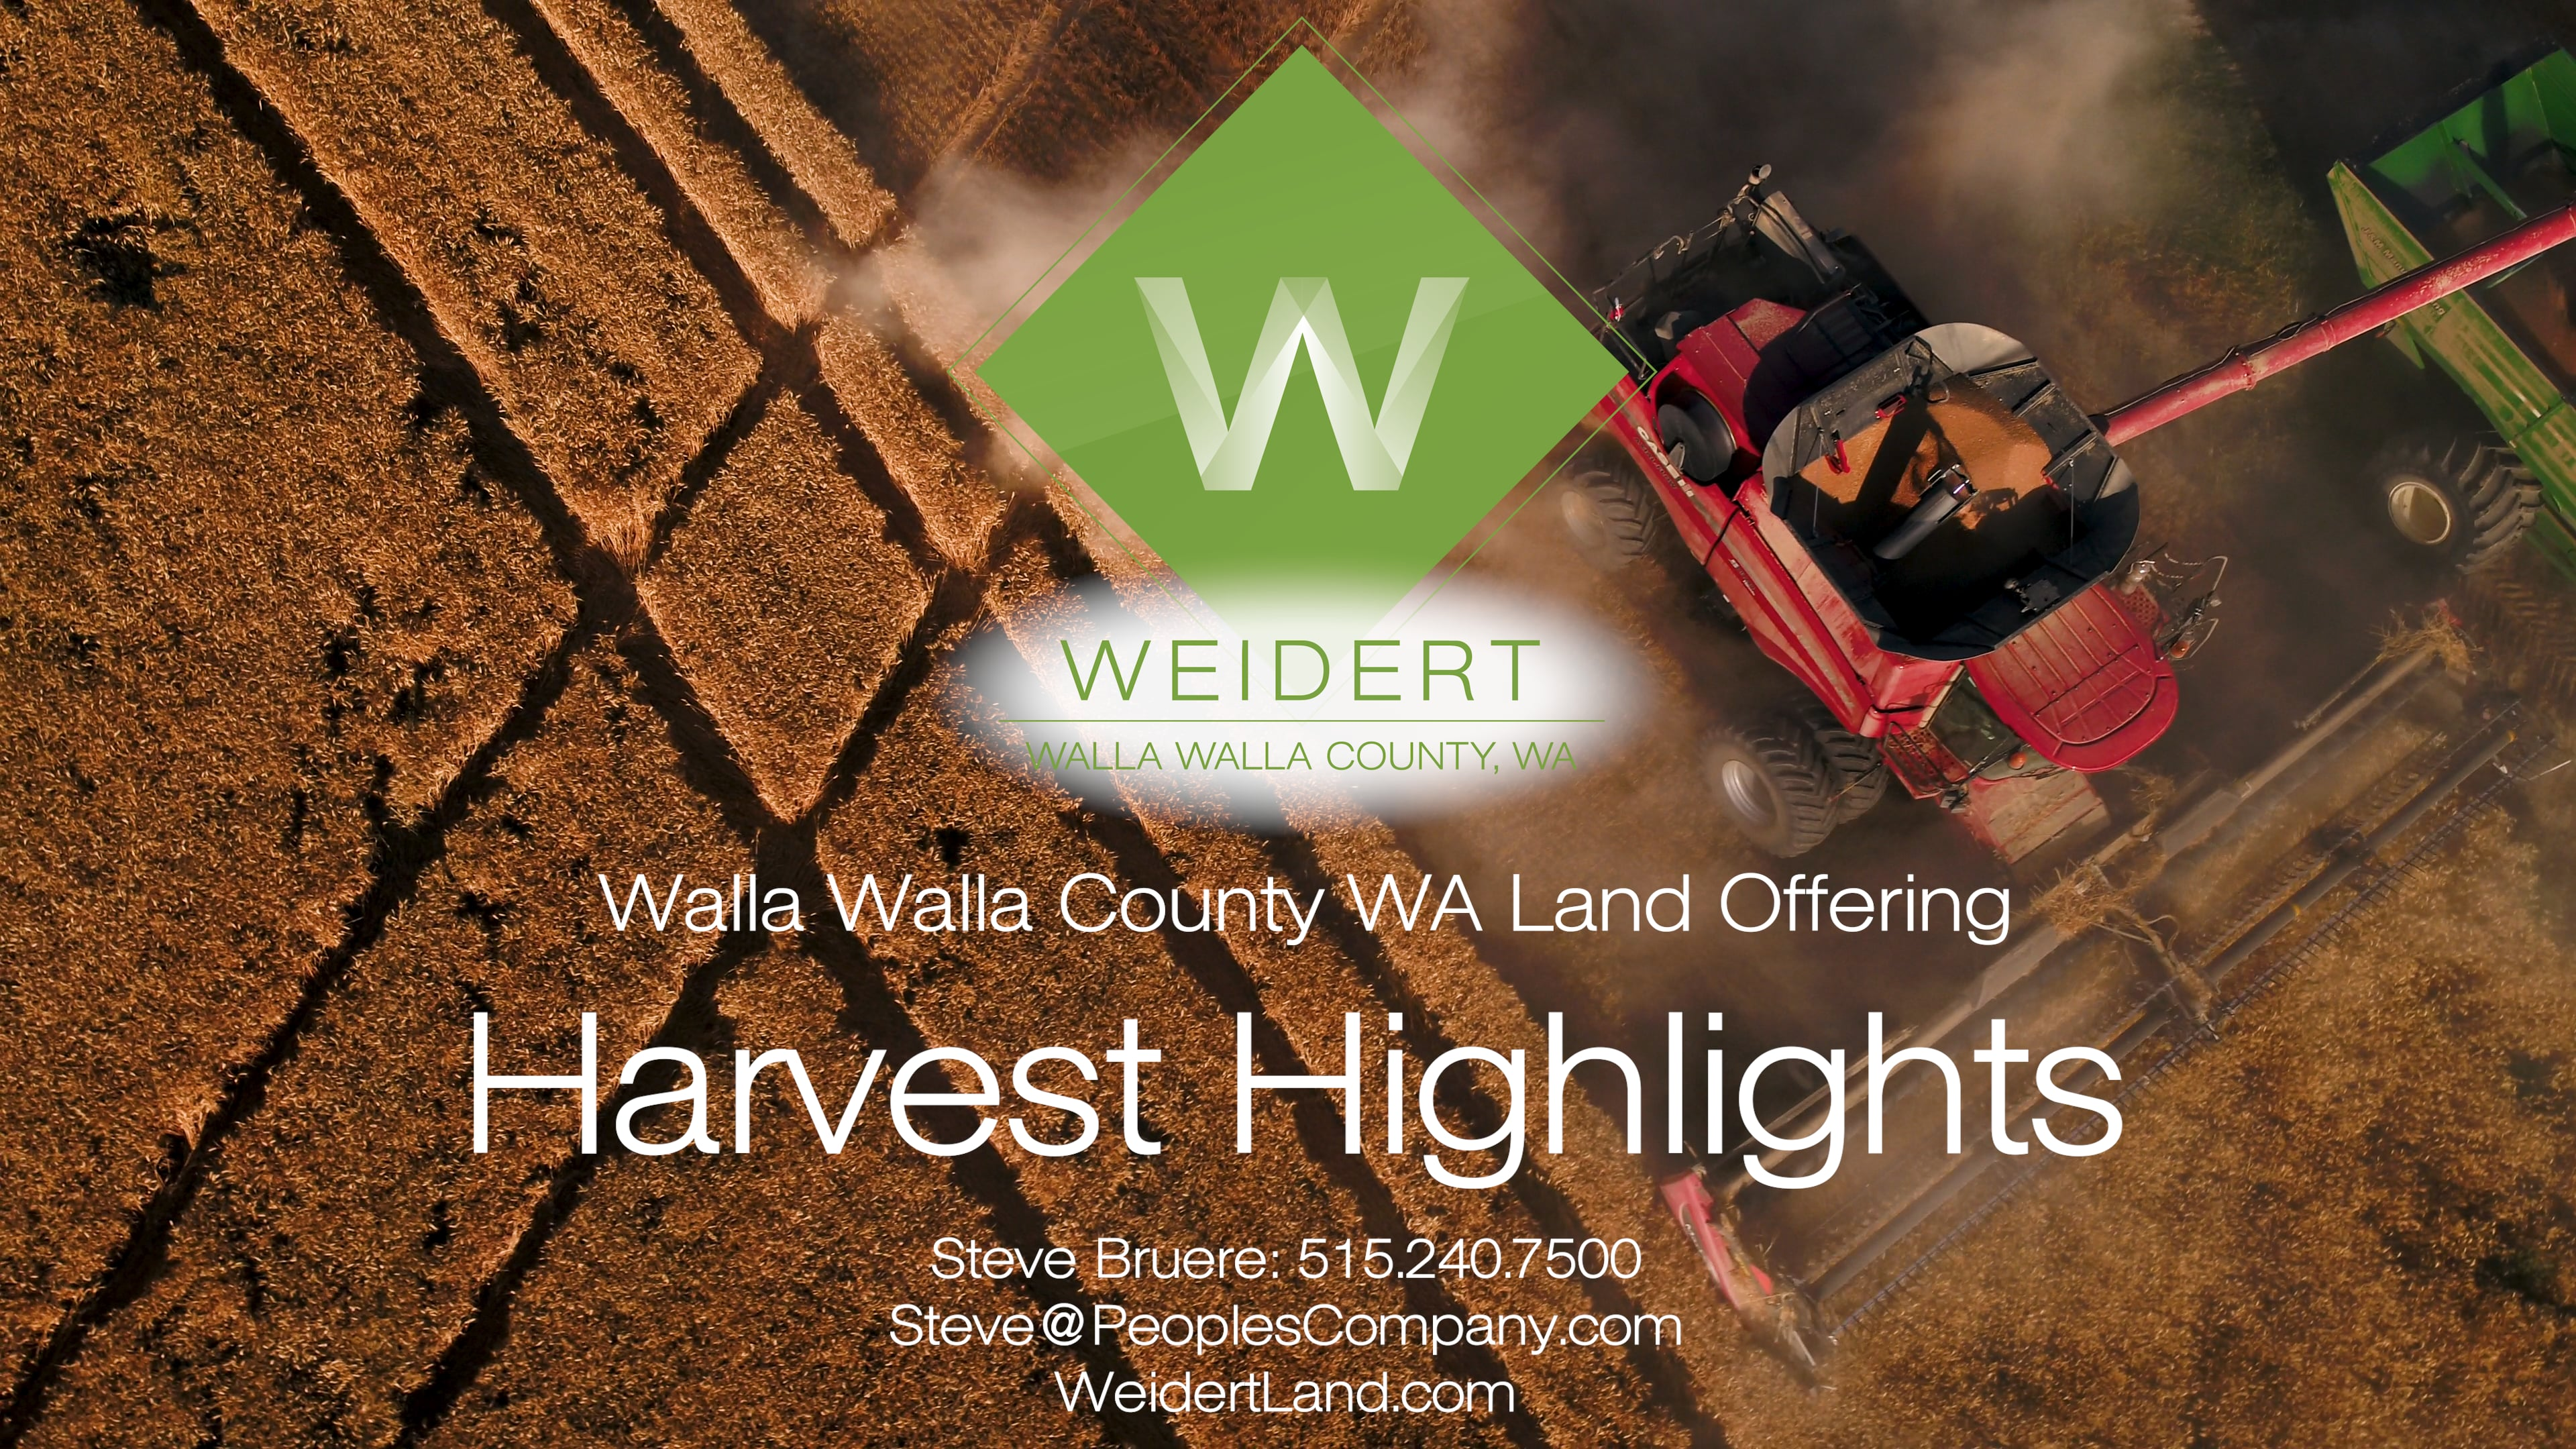 Weidert Harvest